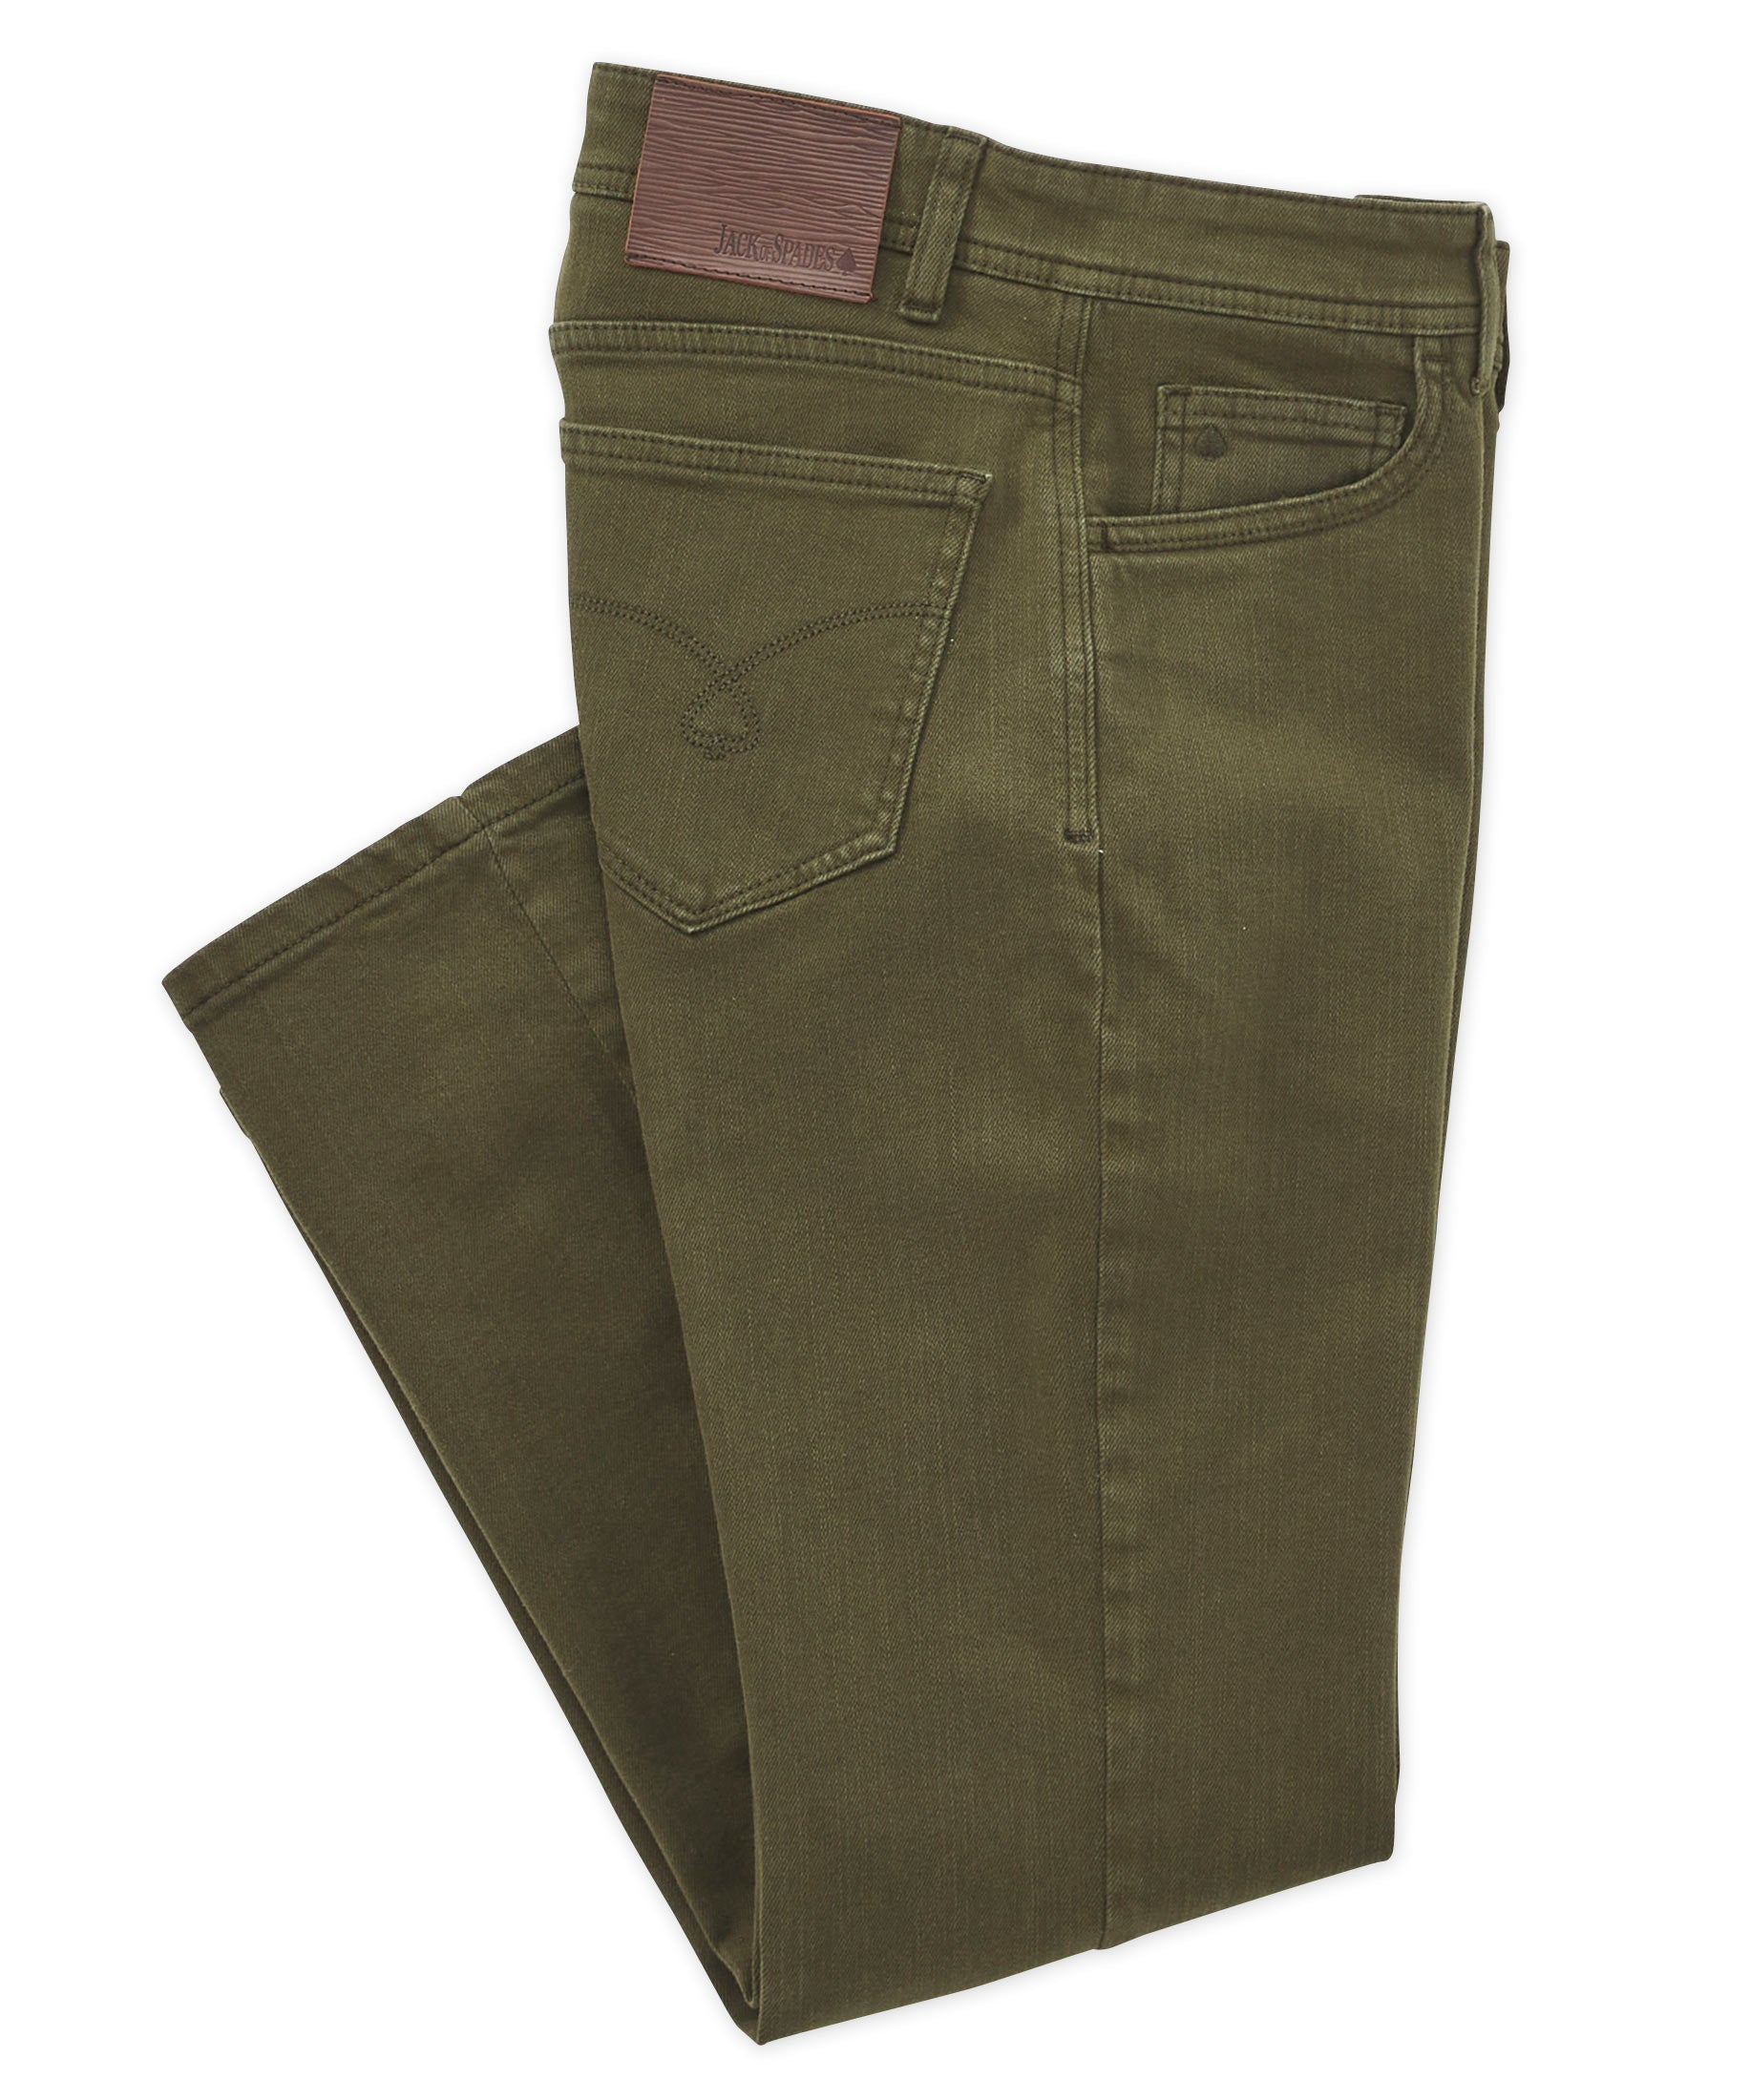 Jack of Spades Stretch Twill 5-Pocket Pant